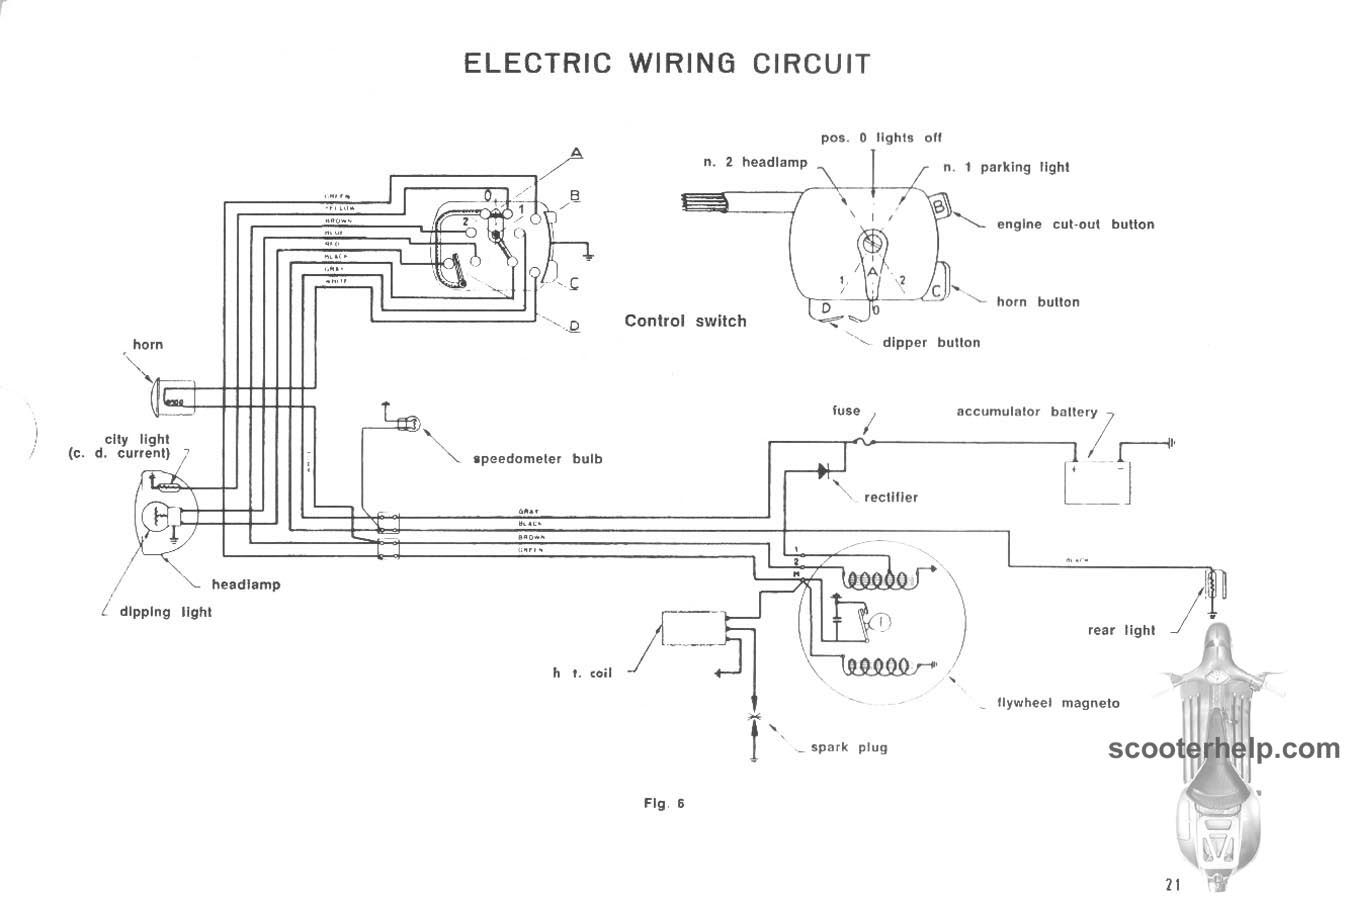 lambretta wiring diagram 1986 chevy power window electric circuit 1953 ld lida and lila pinterest